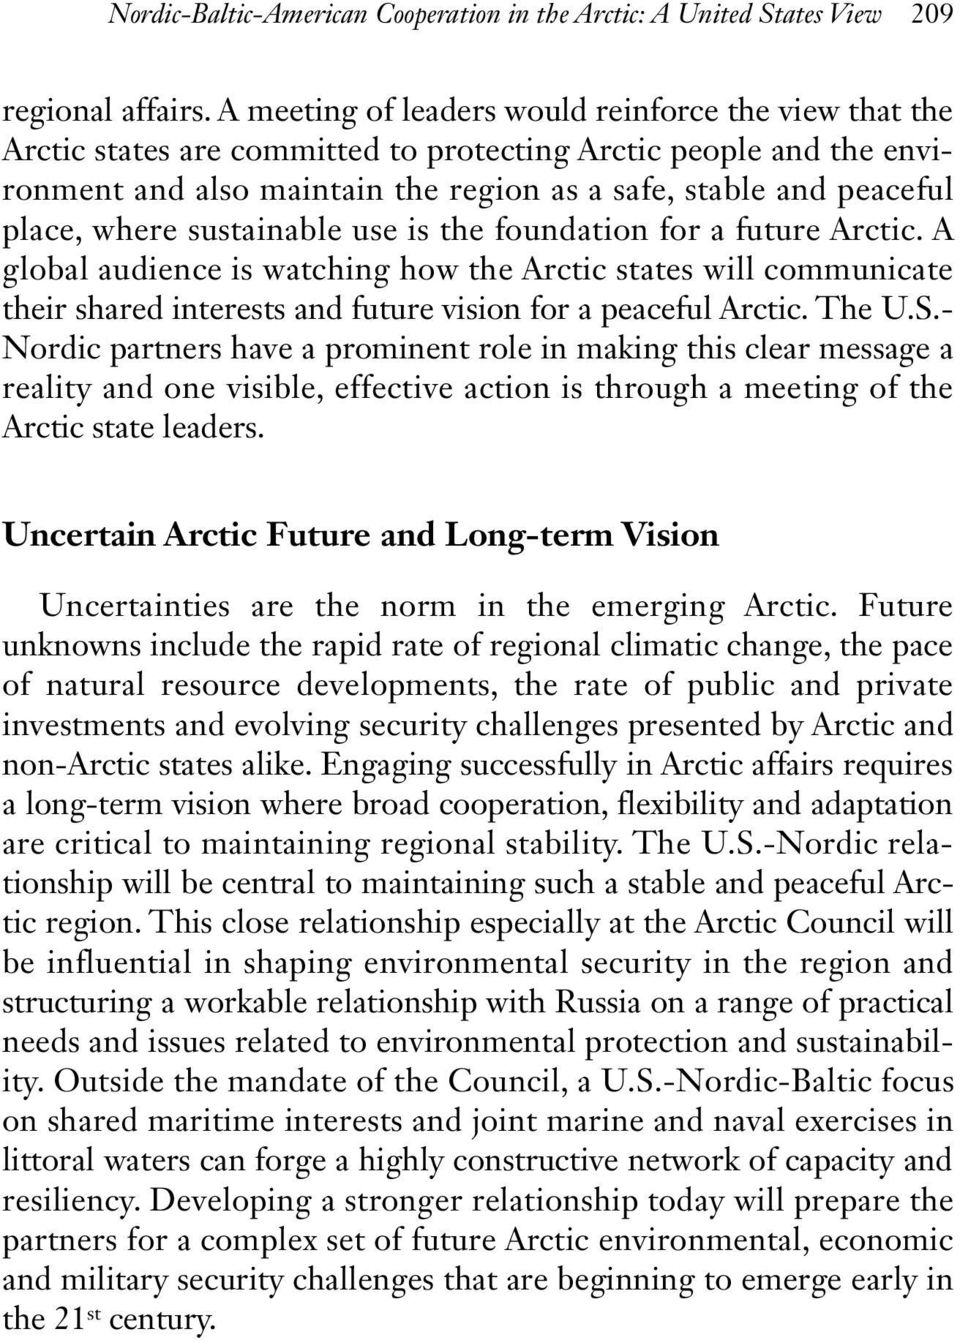 where sustainable use is the foundation for a future Arctic. A global audience is watching how the Arctic states will communicate their shared interests and future vision for a peaceful Arctic. The U.